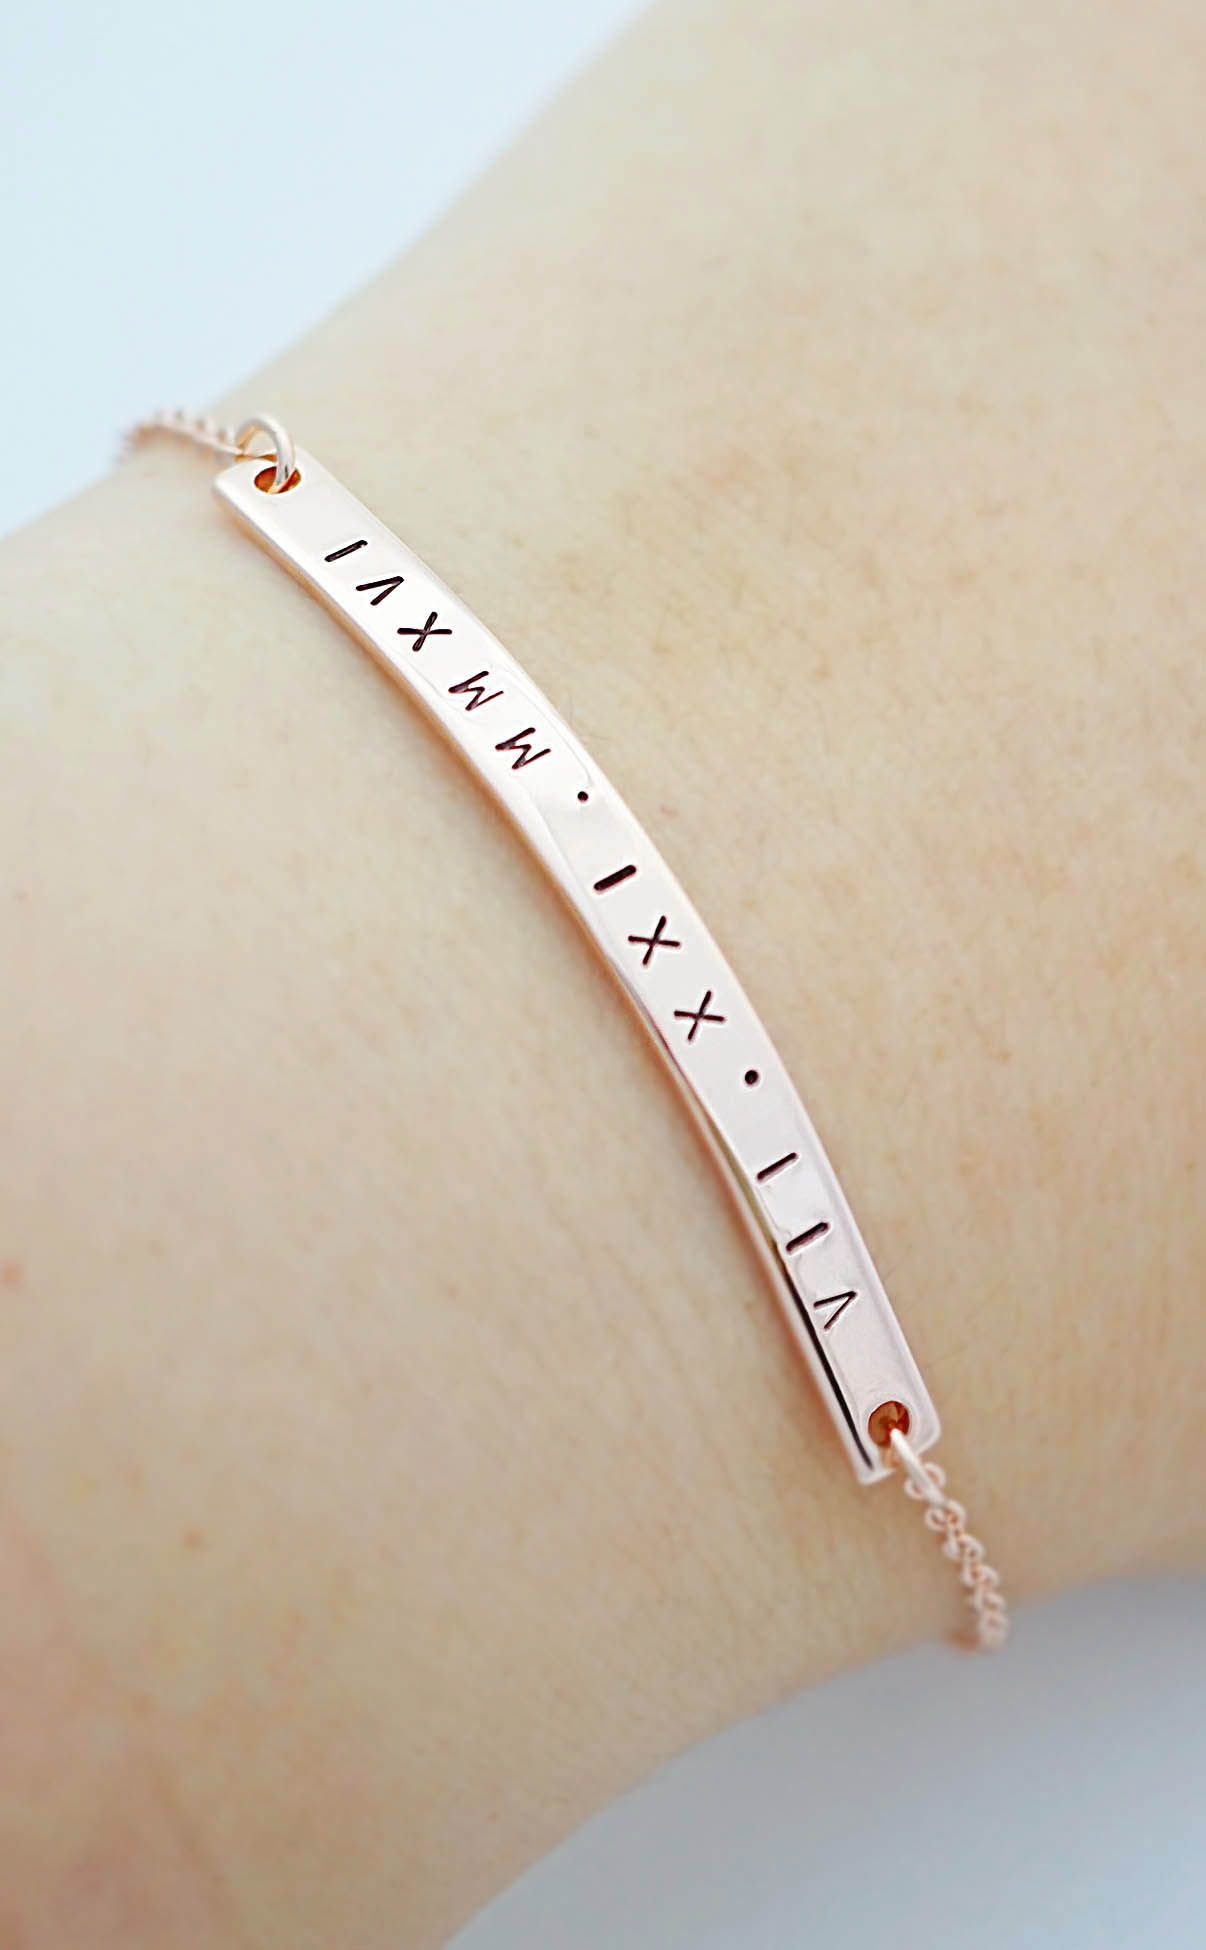 lat casamento coordinates close engraved band pin bracelets dinheiro bracelet long e gold custom